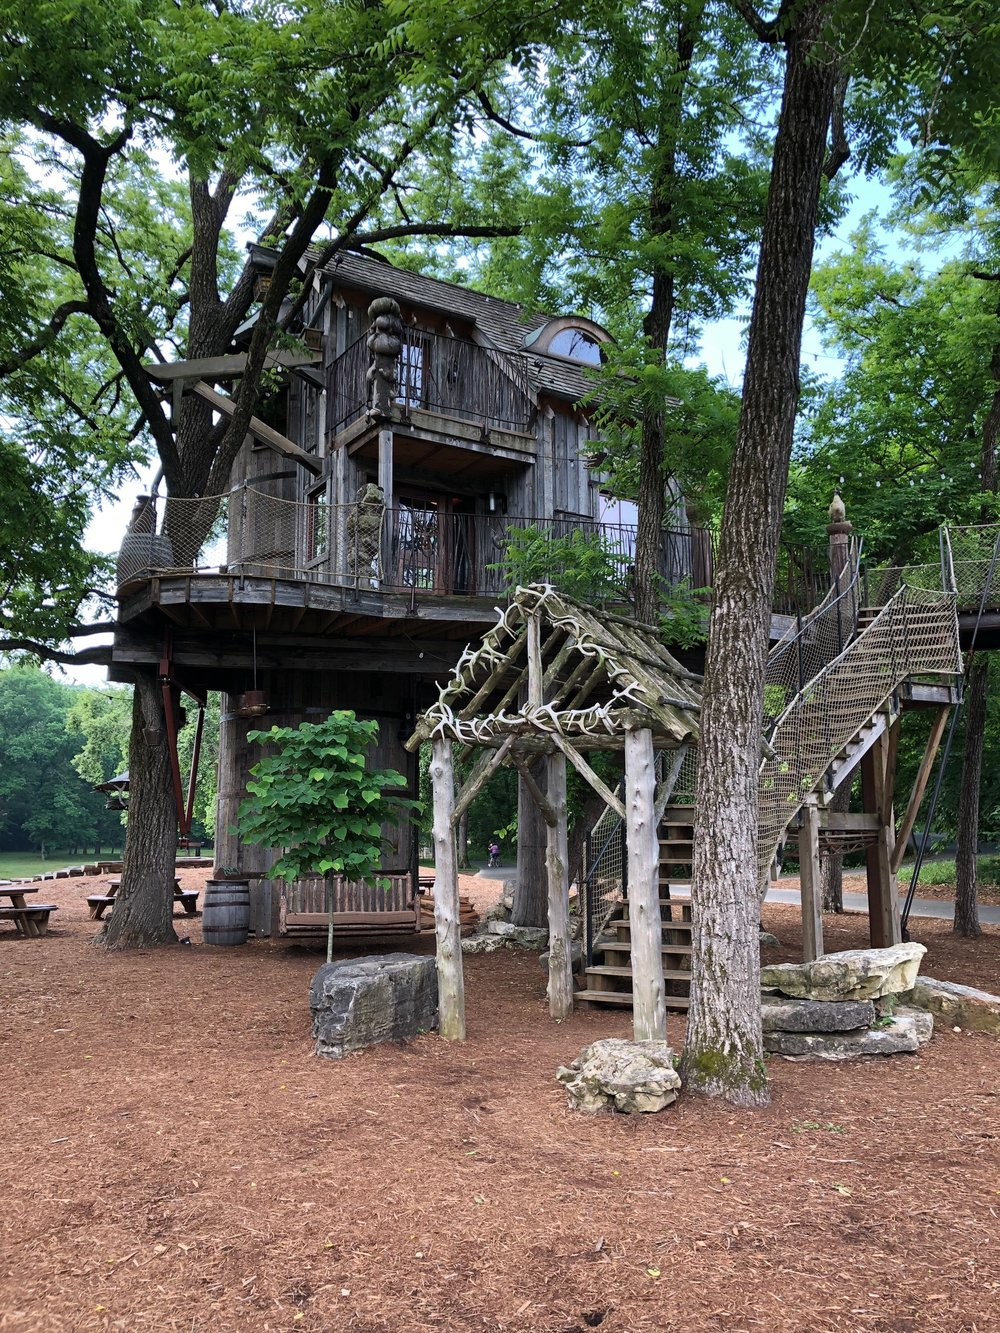 This tree house was built by Treehouse Masters on Animal Planet.